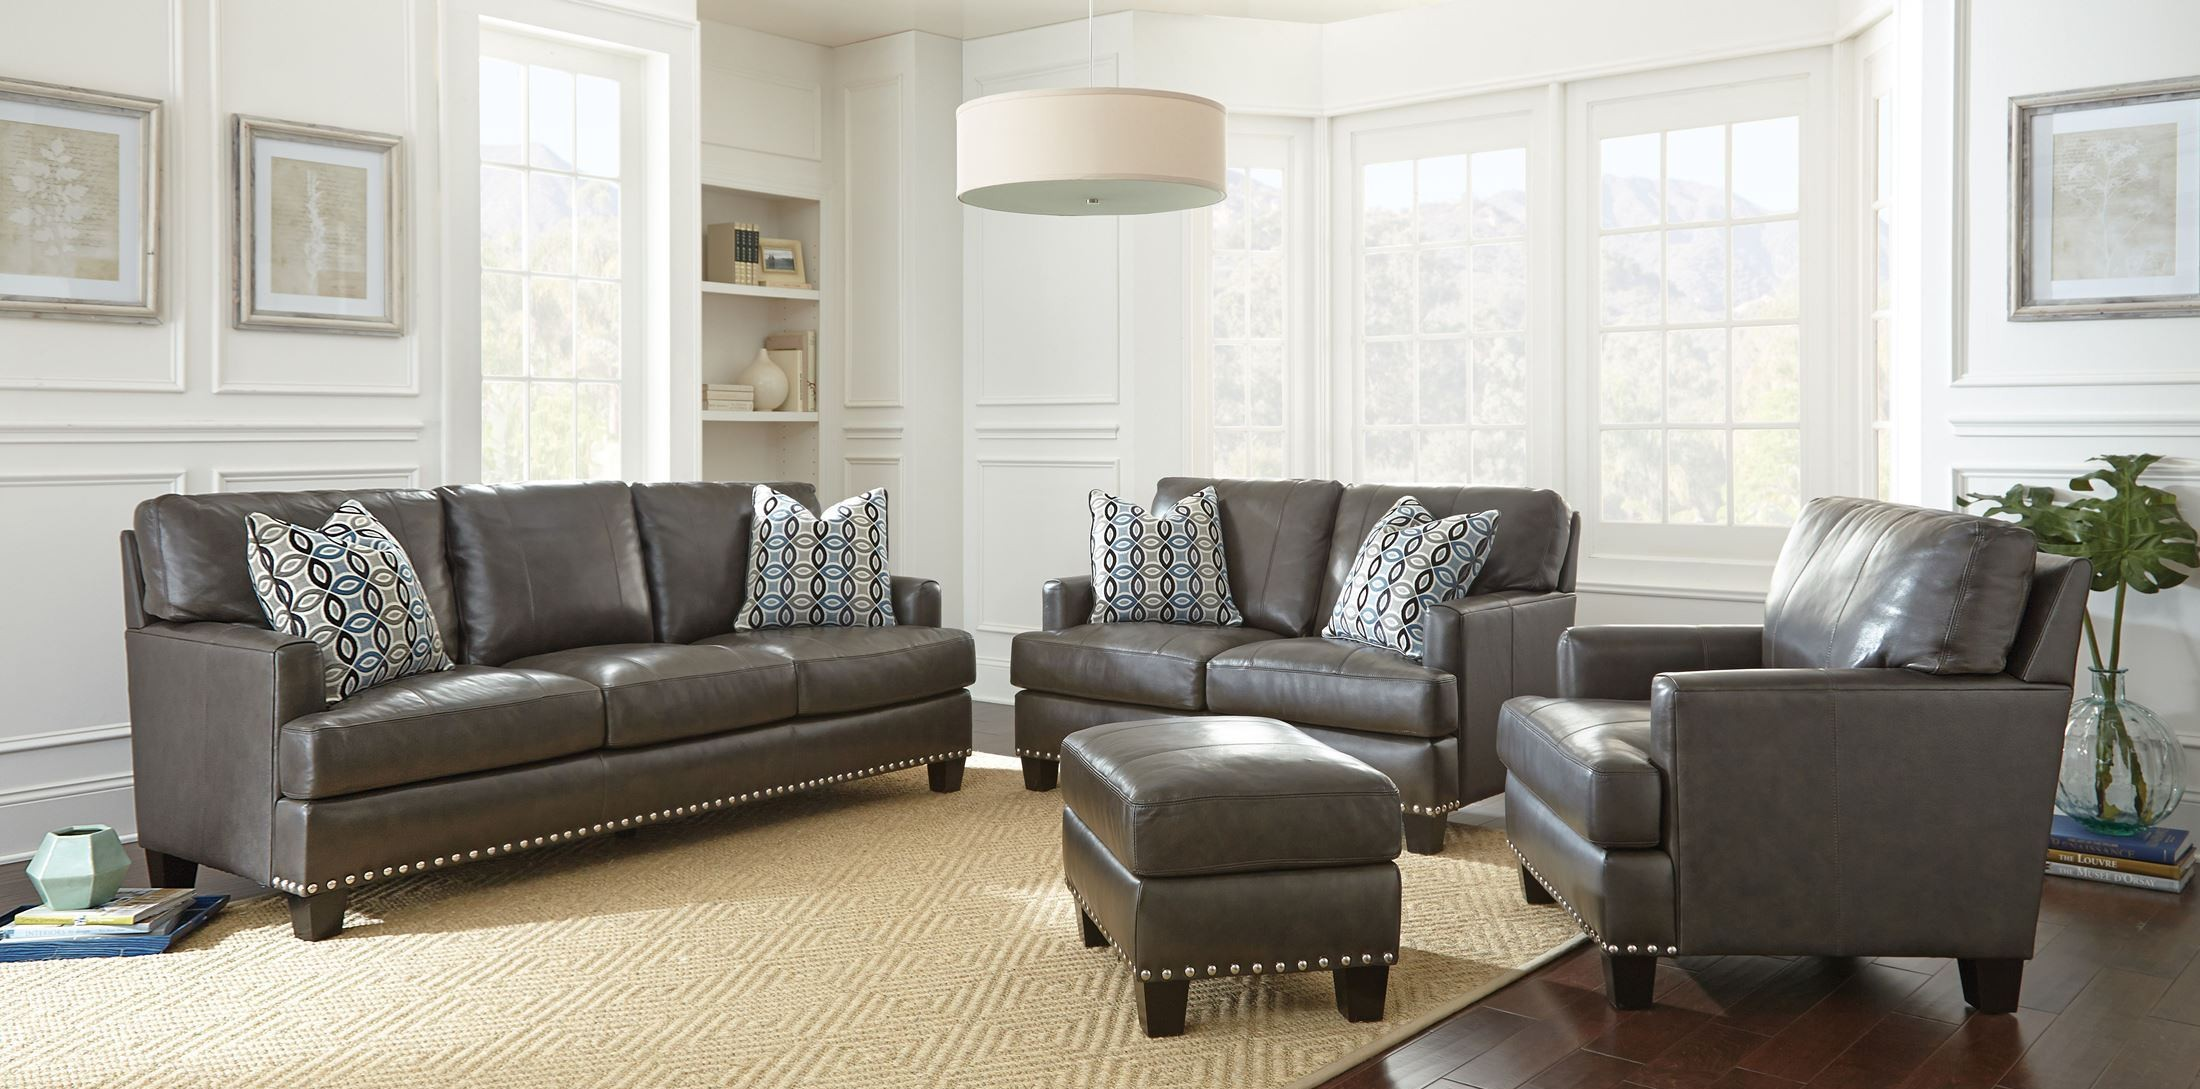 Patrese leather living room set from steve silver at810s coleman furniture - Silver living room furniture ...